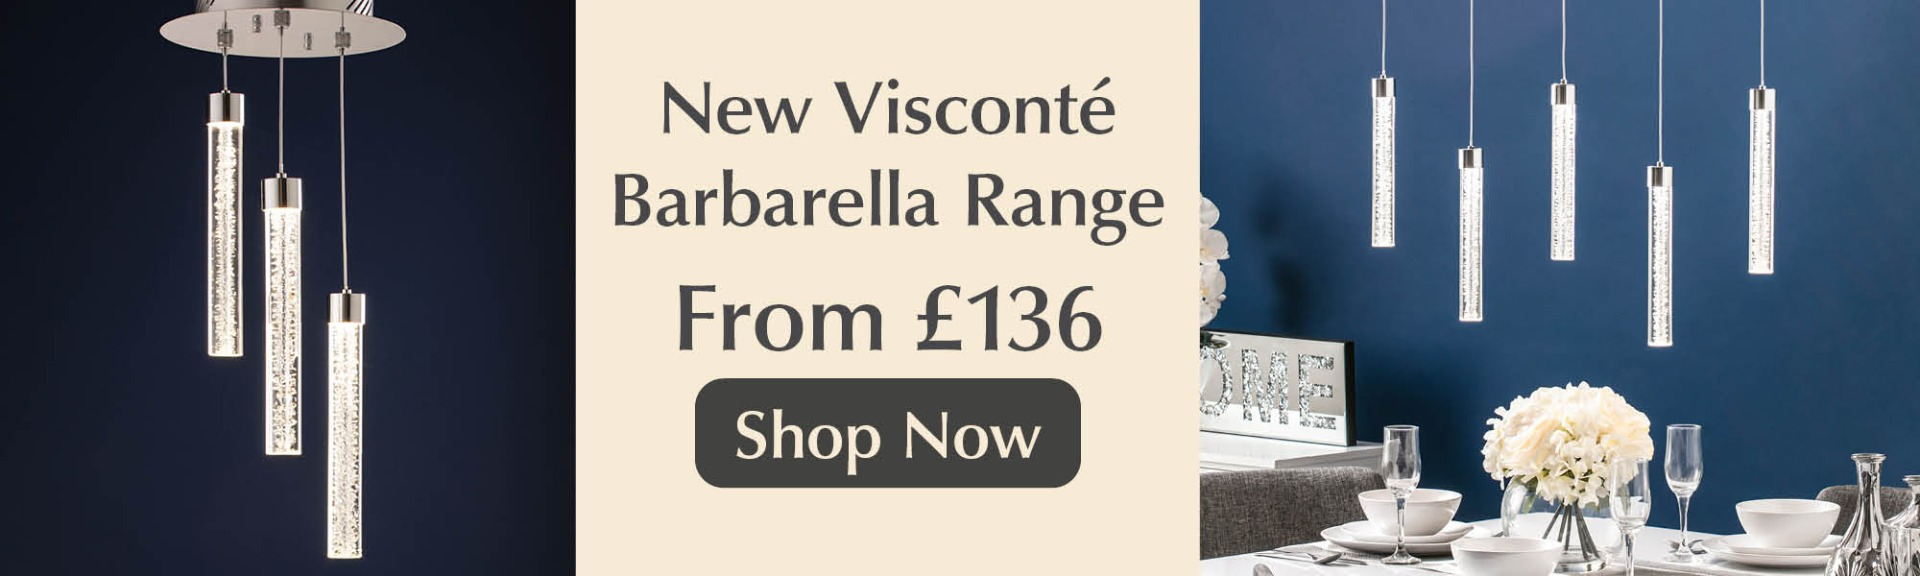 New Visconte Barbarella Range from £136. Shop now